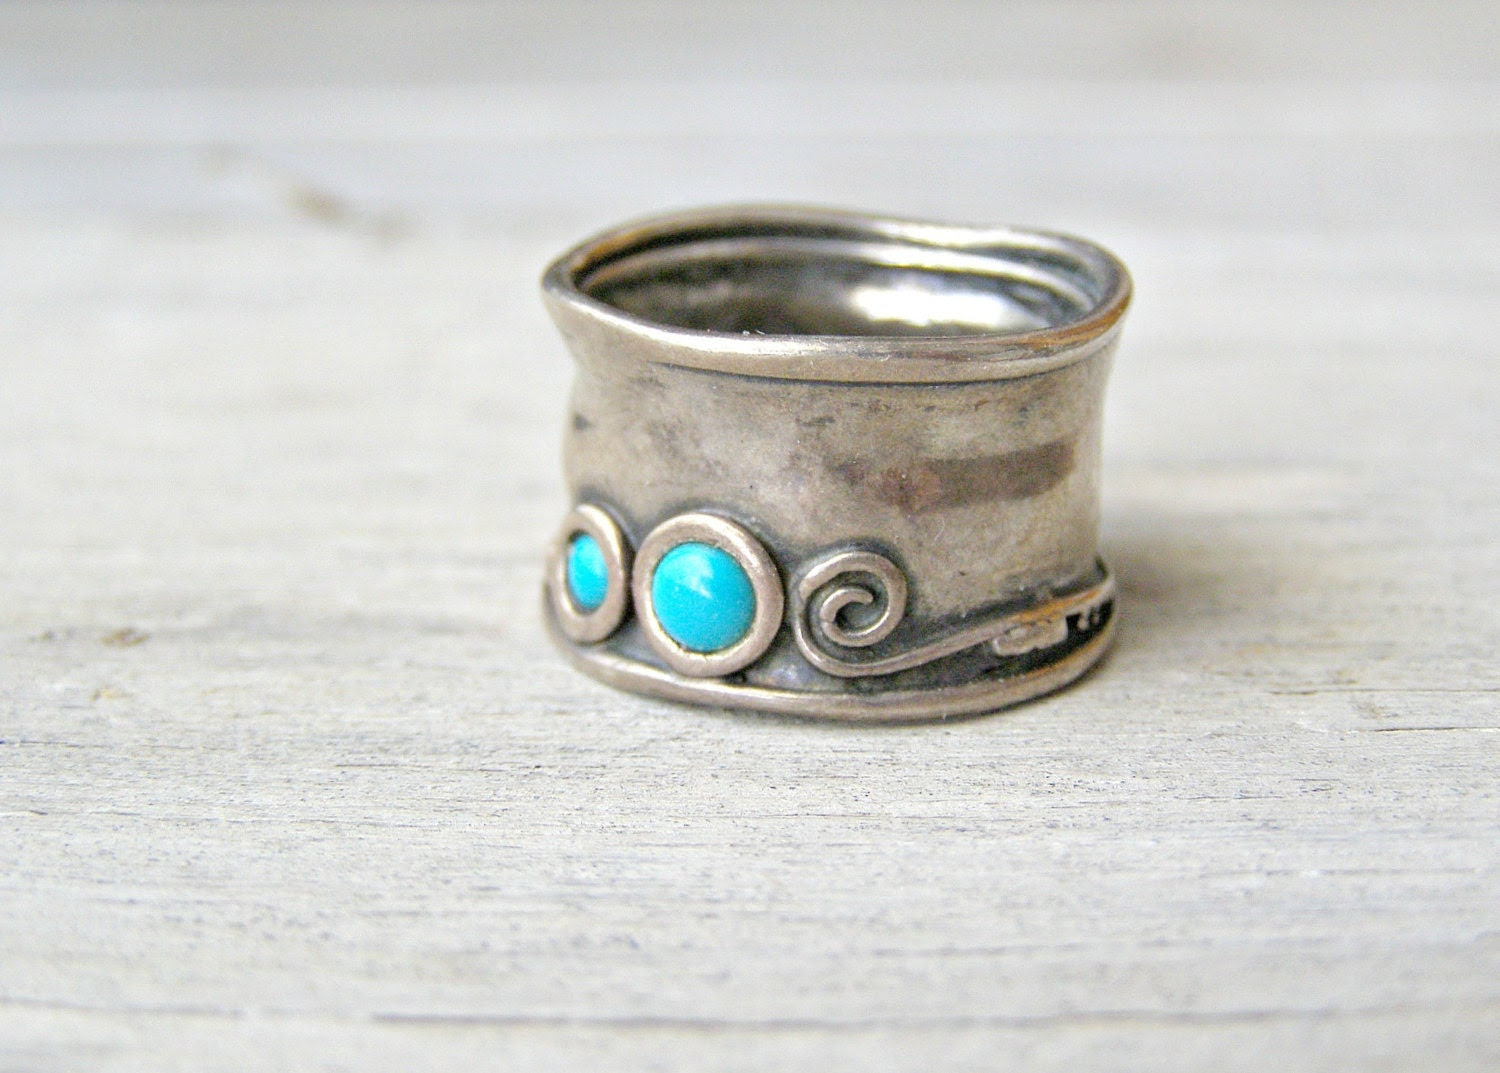 Sterling Silver Turquoise Ring, Boho 80s, Retro modern jewelry, gift for woman, gift for wife, Graduation Gift - MeshuMaSH